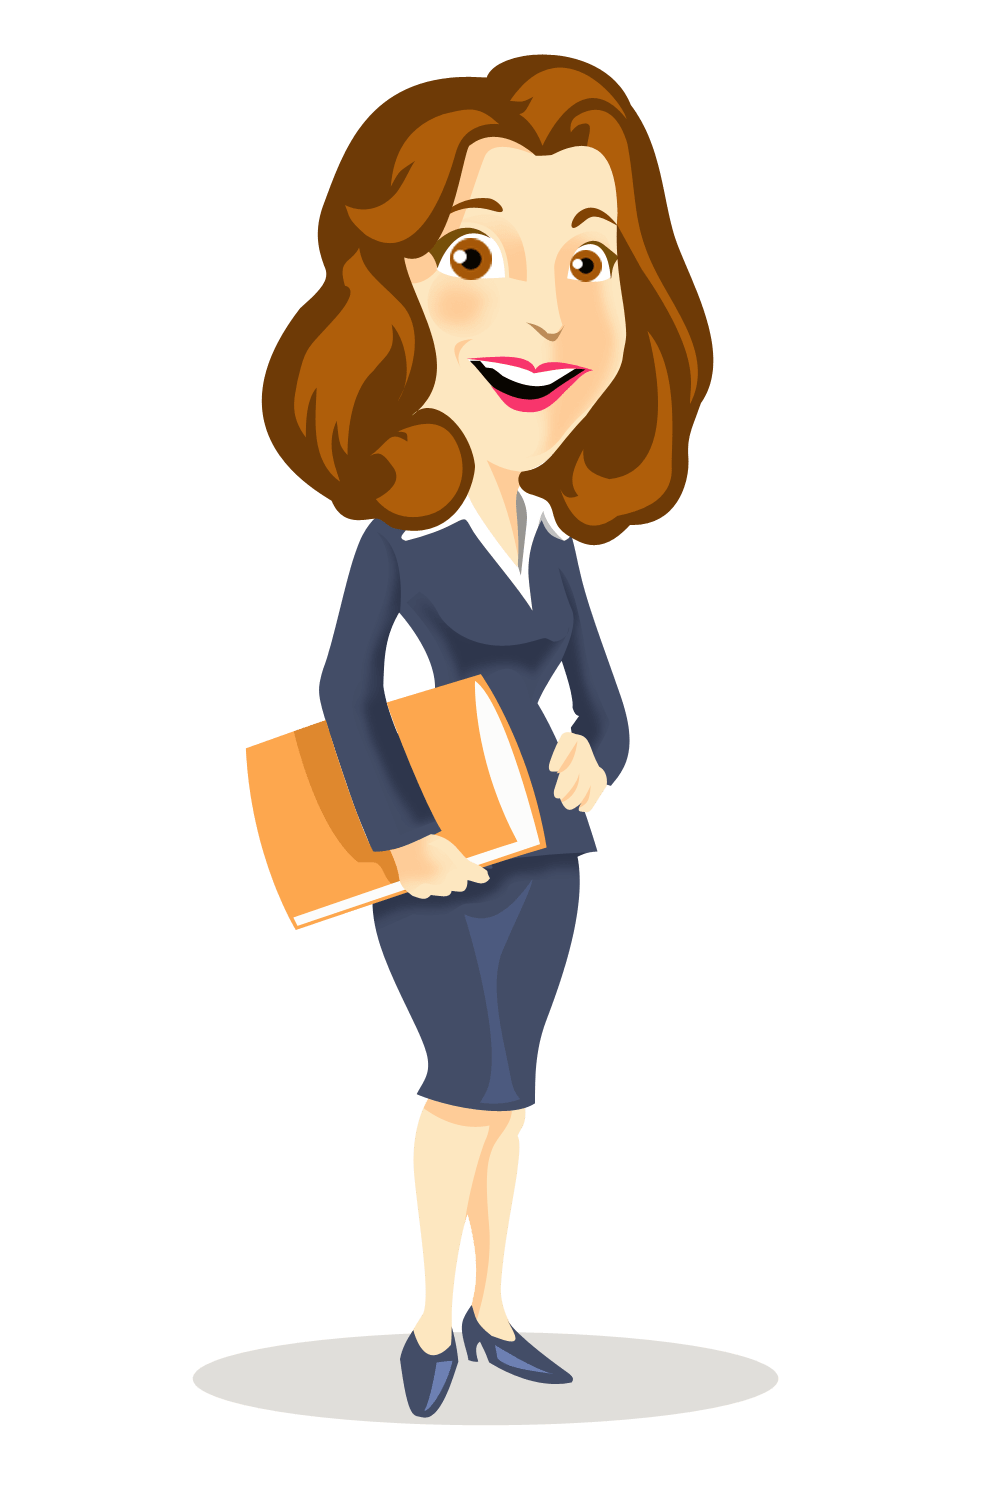 cartoon woman clip art - HD 1000×1500